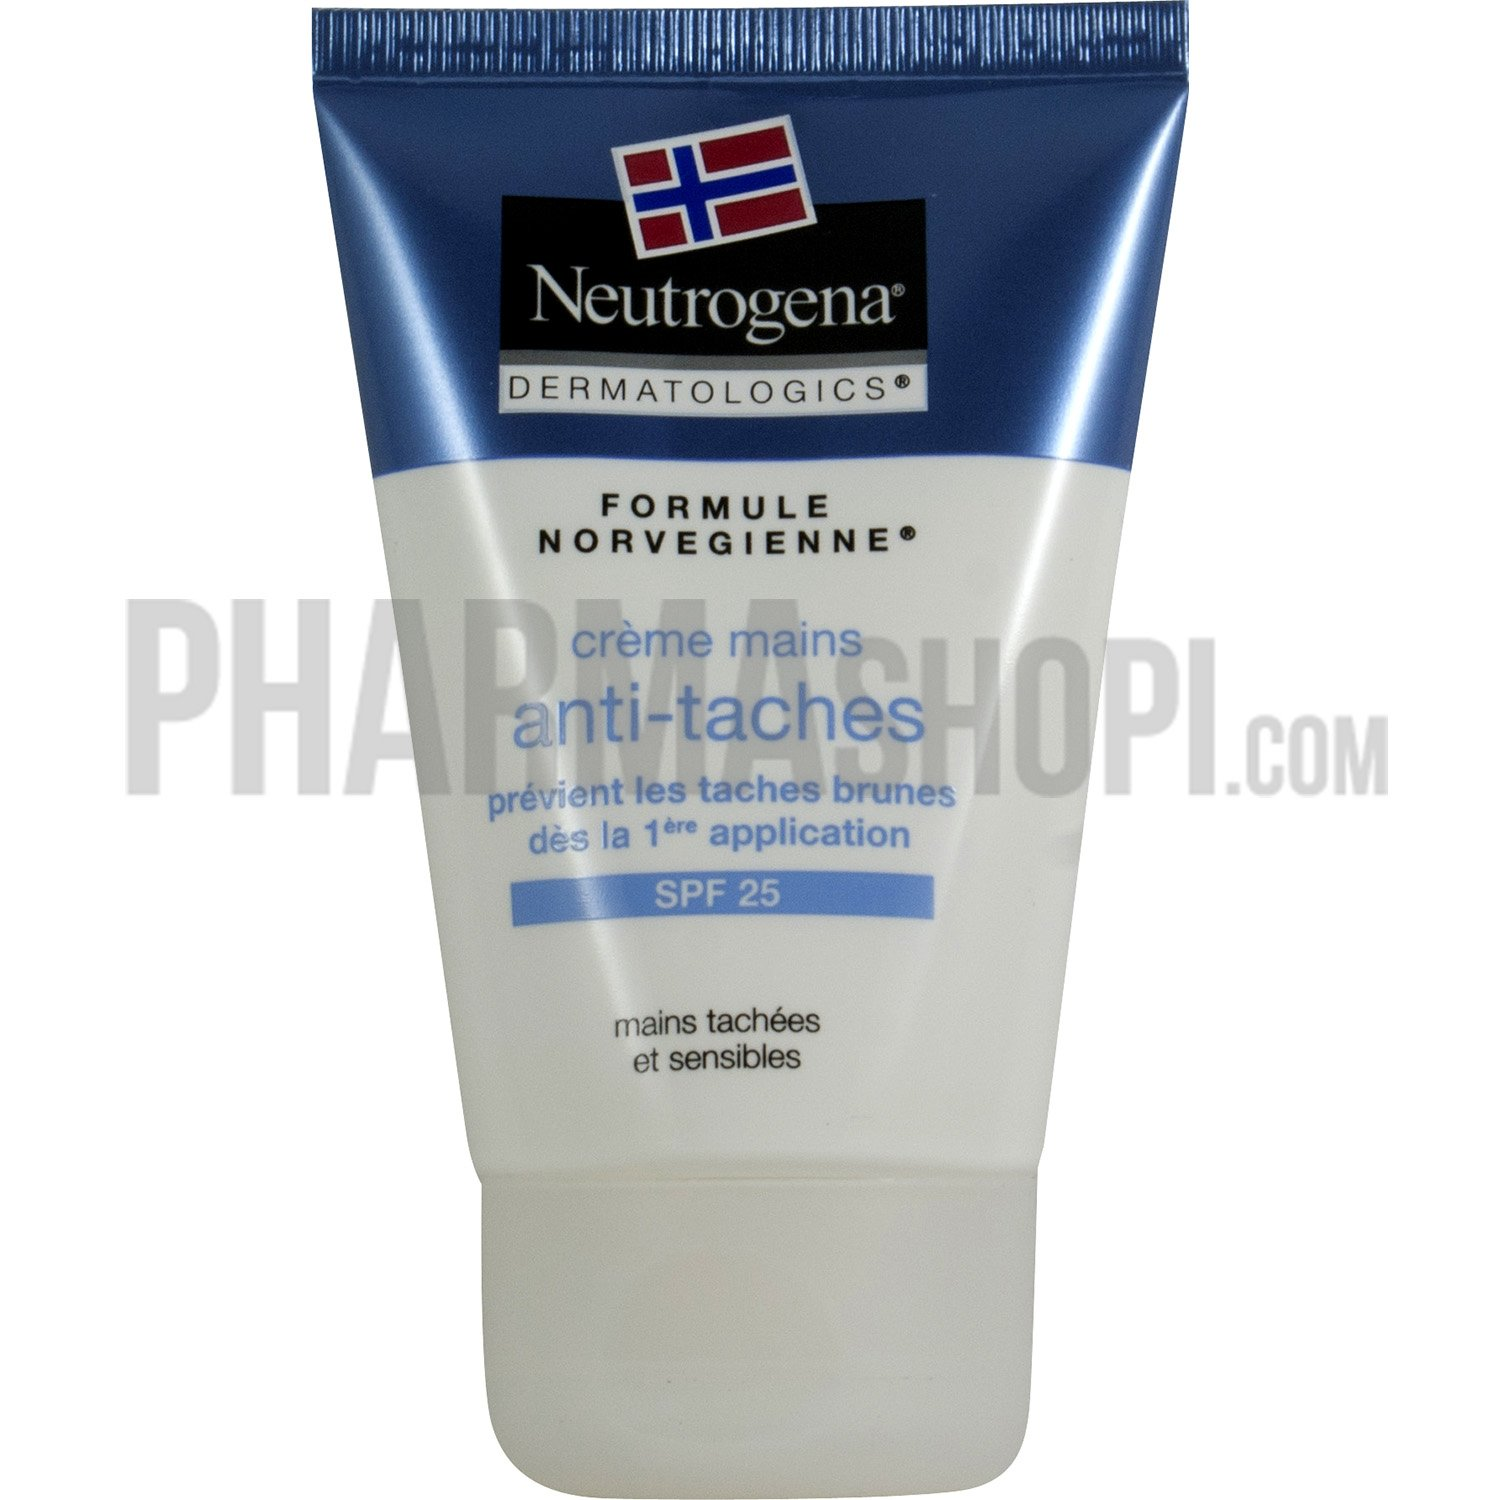 neutrogena cr me mains anti taches neutrogena tube de 50 ml. Black Bedroom Furniture Sets. Home Design Ideas